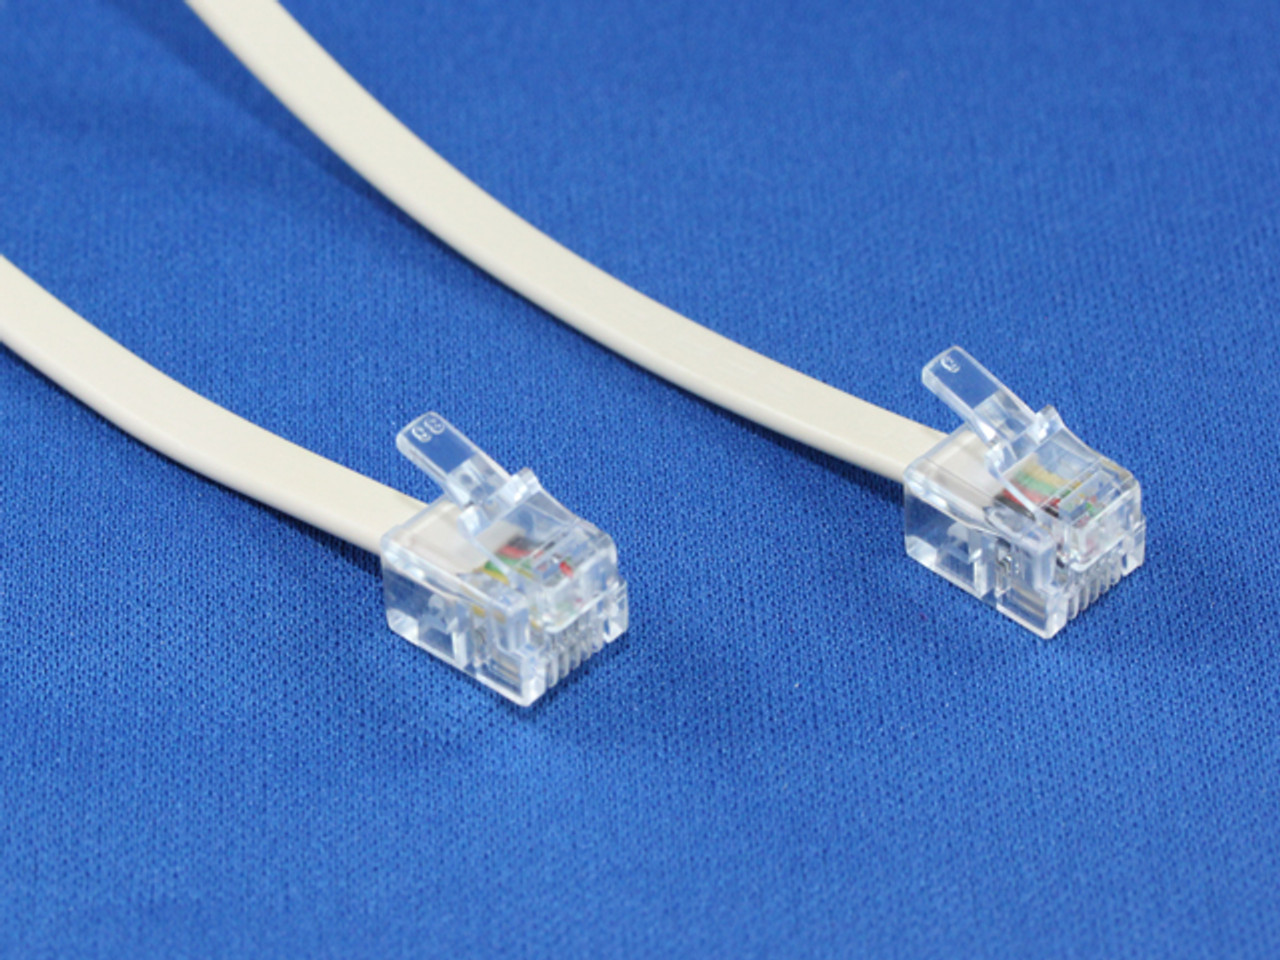 Product image for 2M RJ12/RJ12 Telephone Cable | CX Computer Superstore